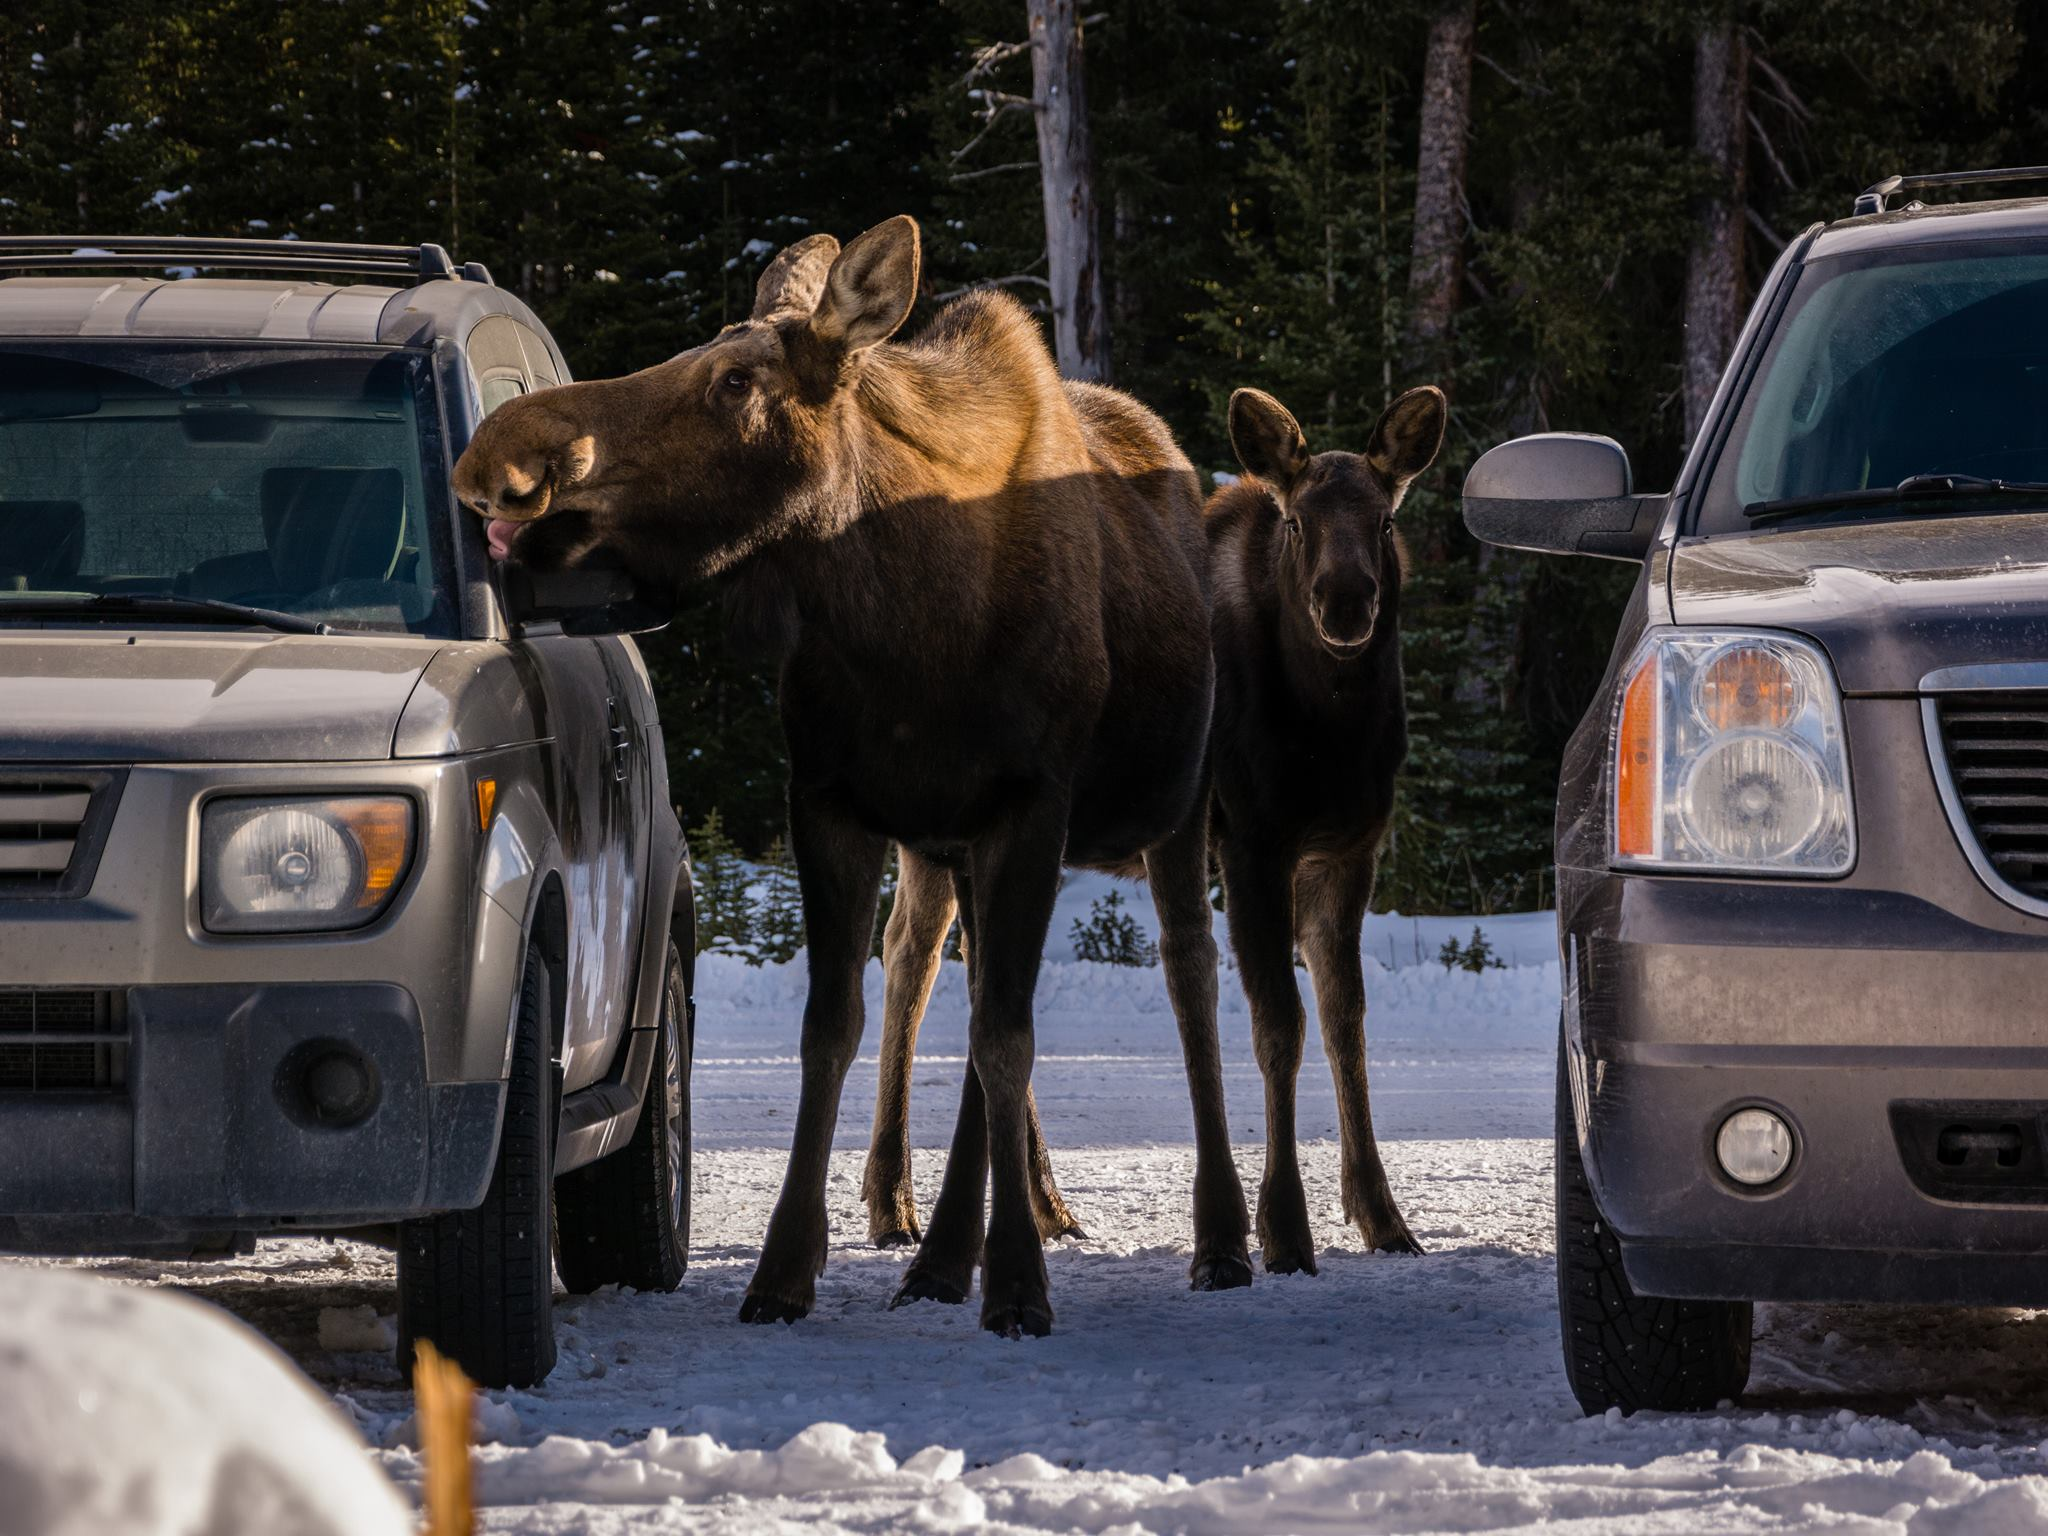 Mother moose teaching her calf the art of the car wash. Elaine Kennedy/Alberta Parks/Facebook